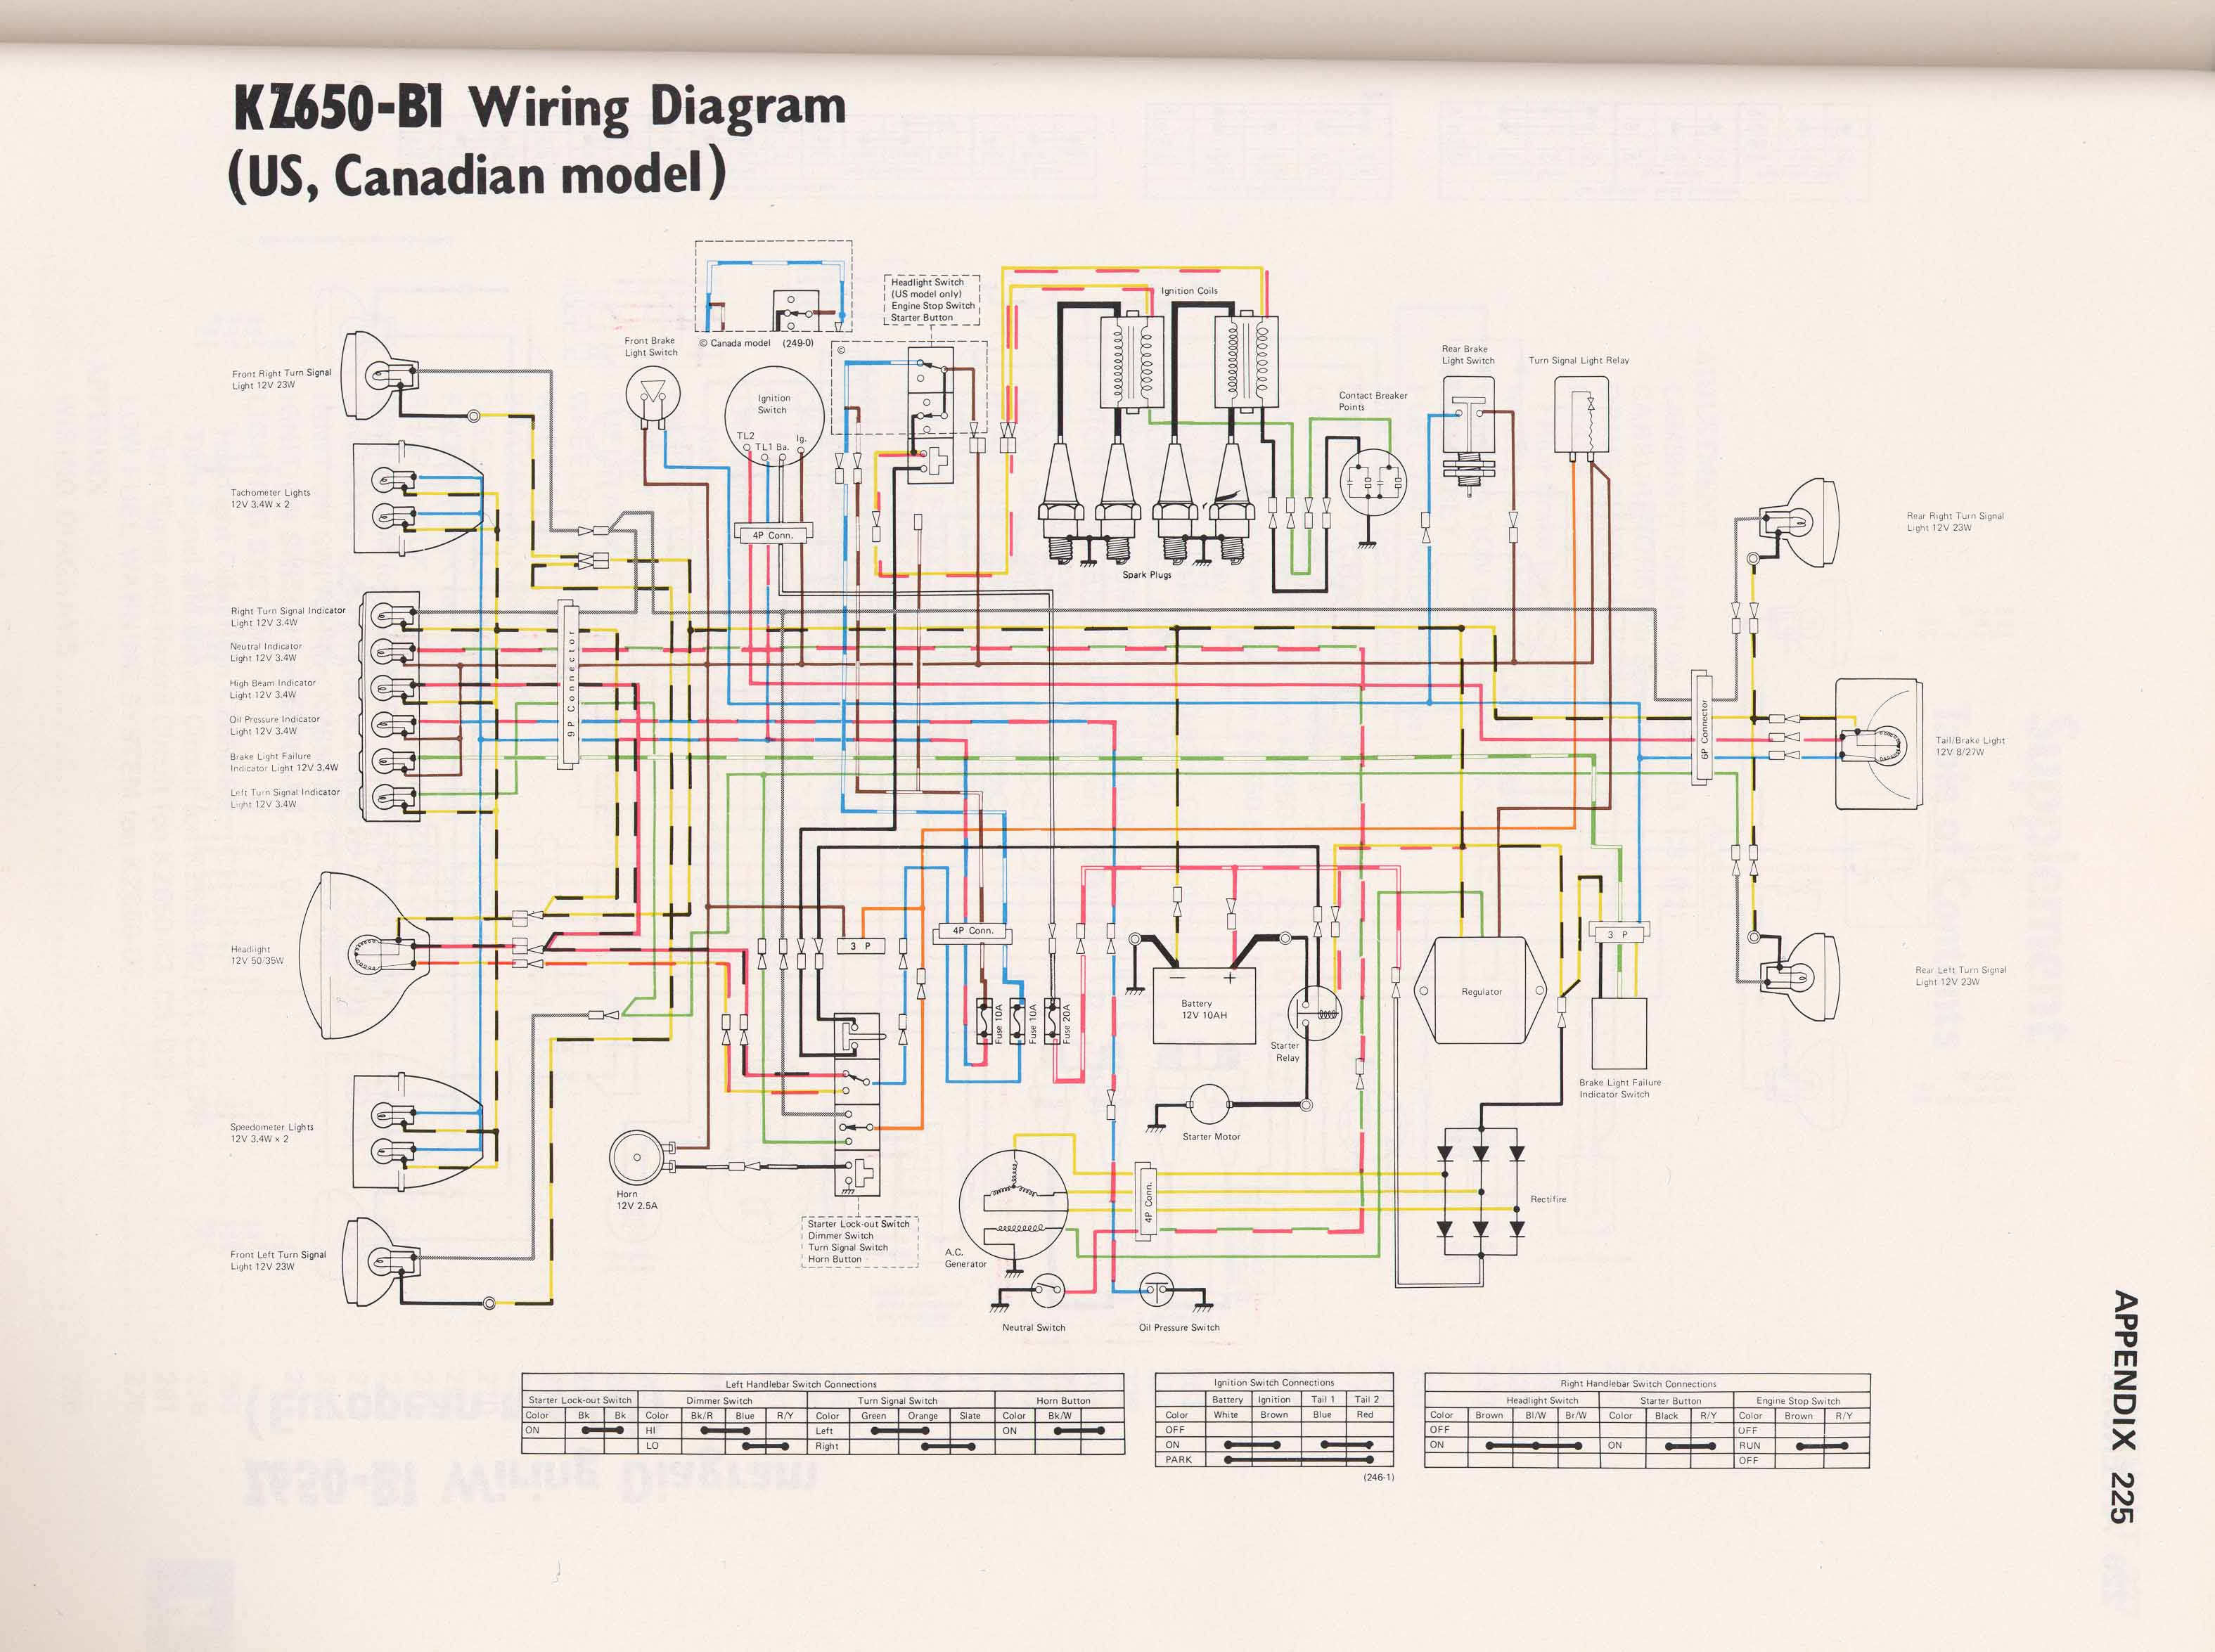 kz650 info wiring diagrams rh diagrams kz650 info Ford Tractor Wiring  Harness Diagram Wiring Receptacles in Series